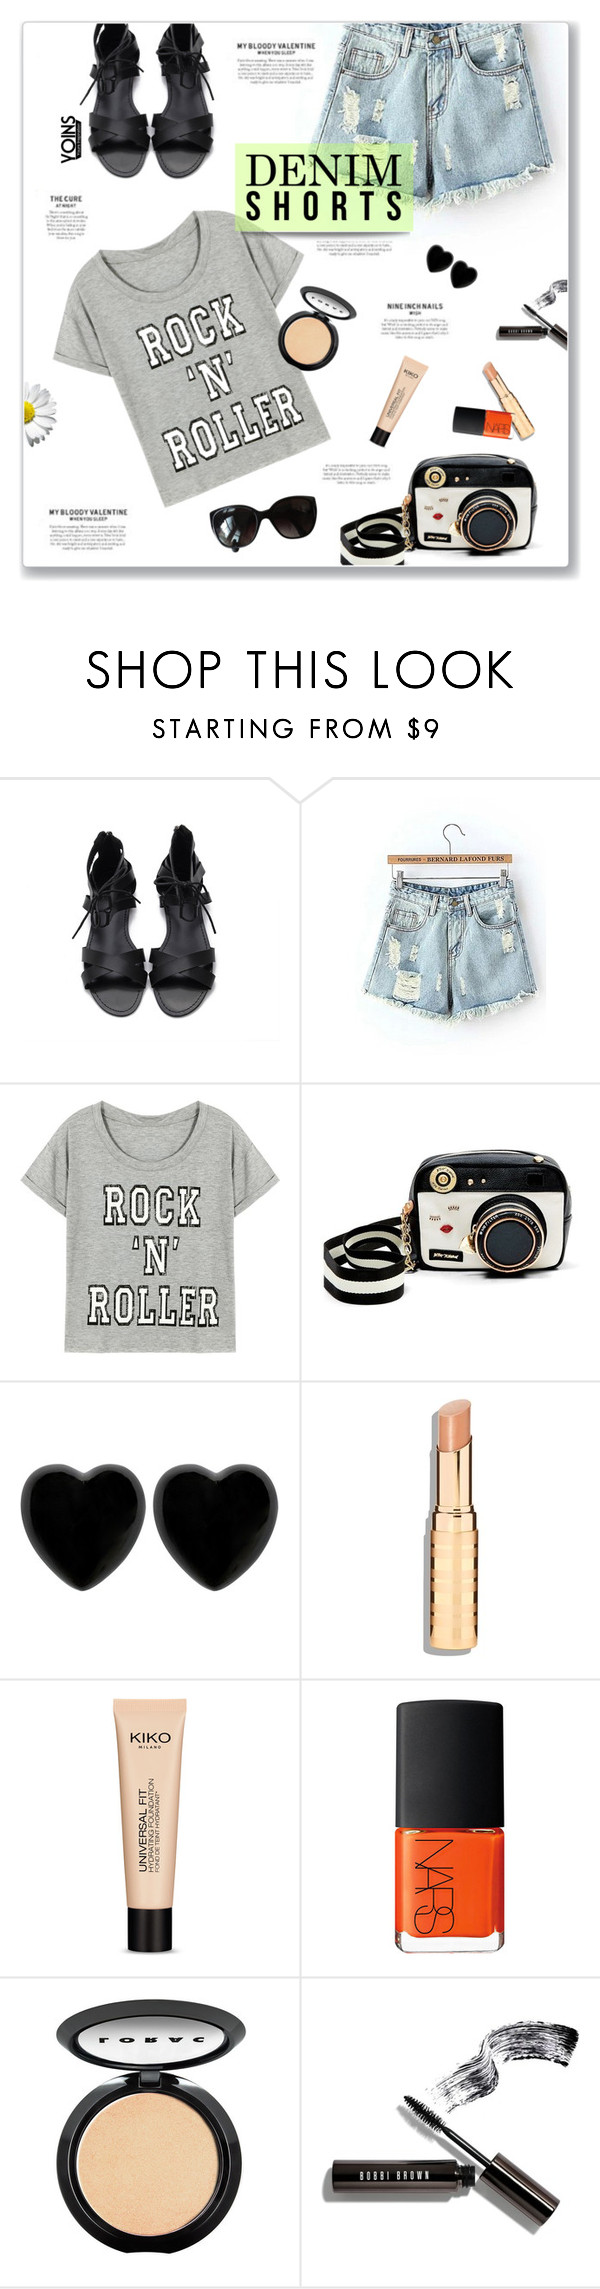 """""""Denim Shorts Yoins 2//16"""" by kellylynne68 ❤ liked on Polyvore featuring Betsey Johnson, Dollydagger, NARS Cosmetics, LORAC, Bobbi Brown Cosmetics, Chanel and vintage"""